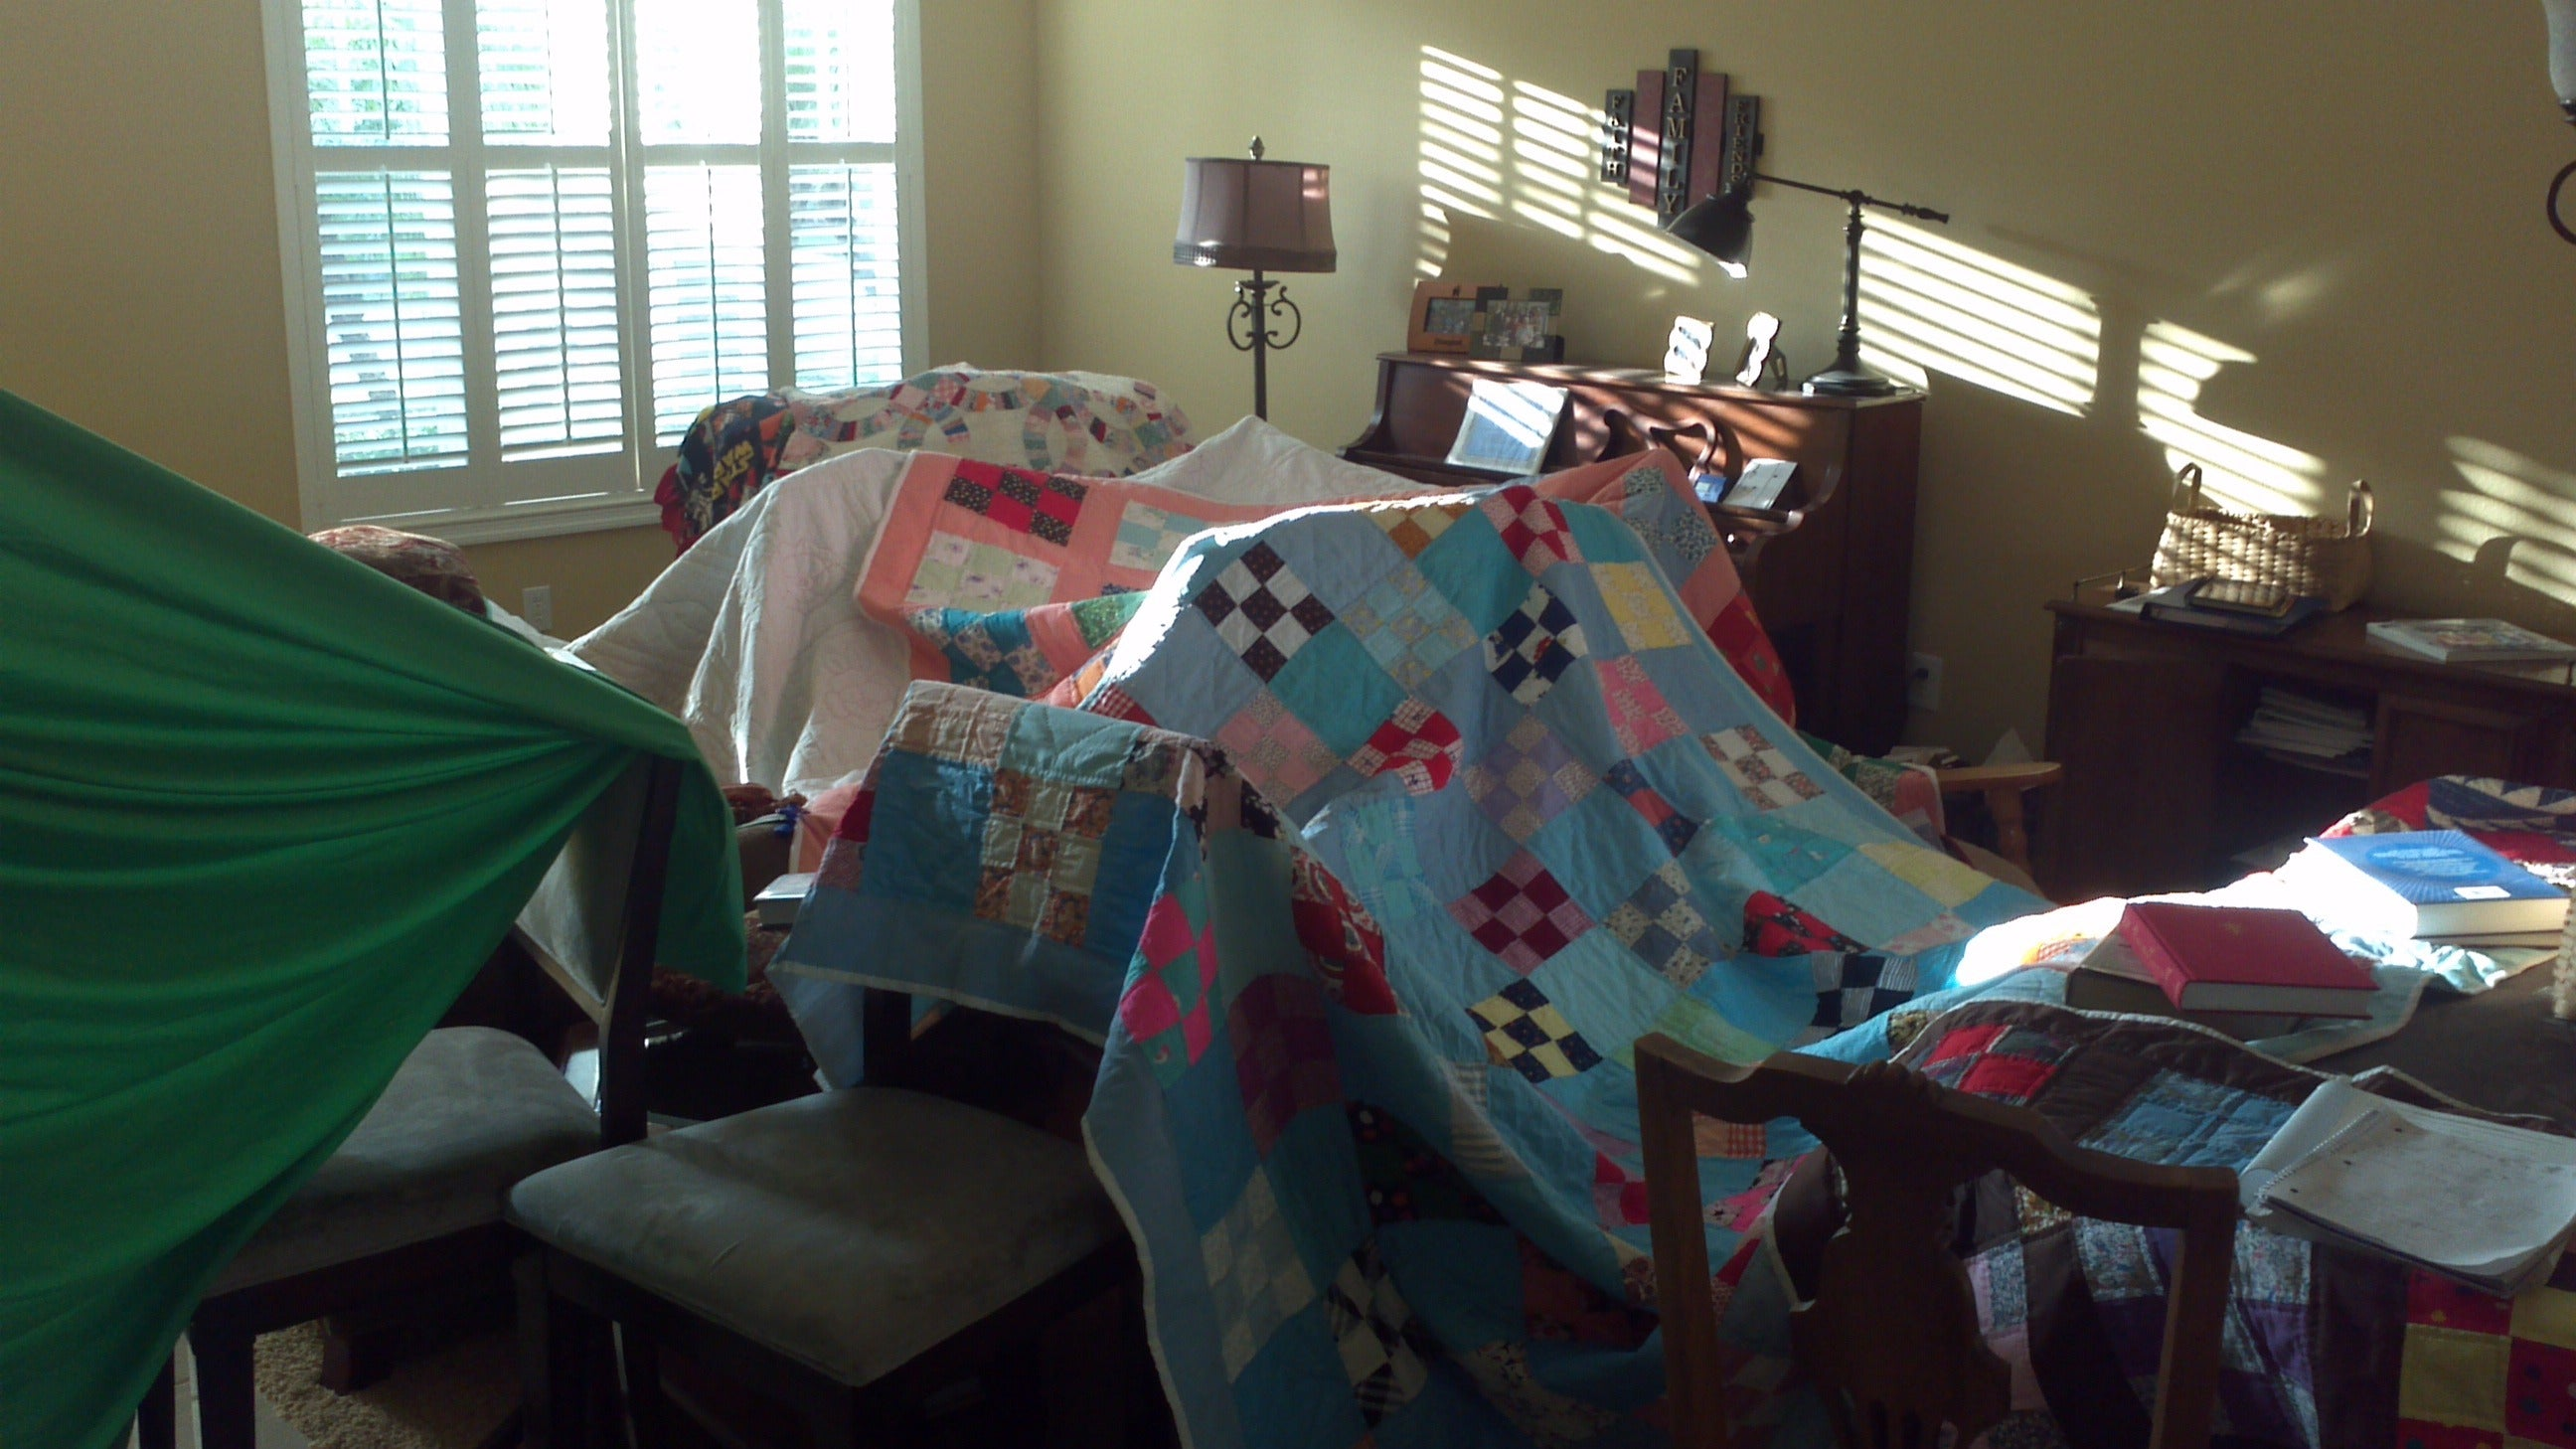 Blanks and throws covering dining room chairs to make a child fort, castle or den